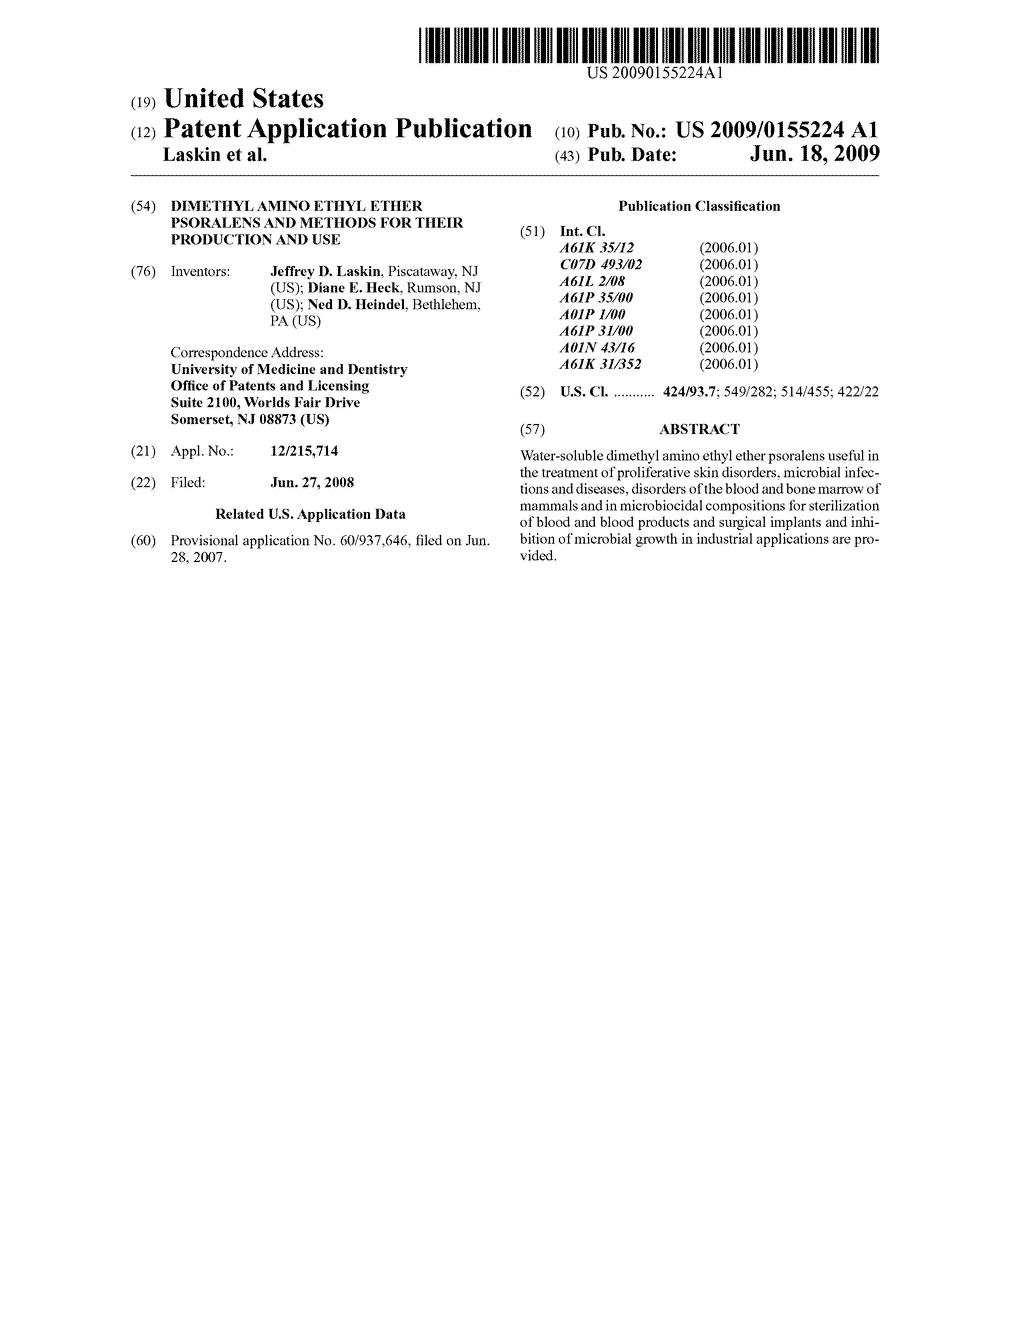 Dimethyl amino ethyl ether psoralens and methods for their production and use - diagram, schematic, and image 01